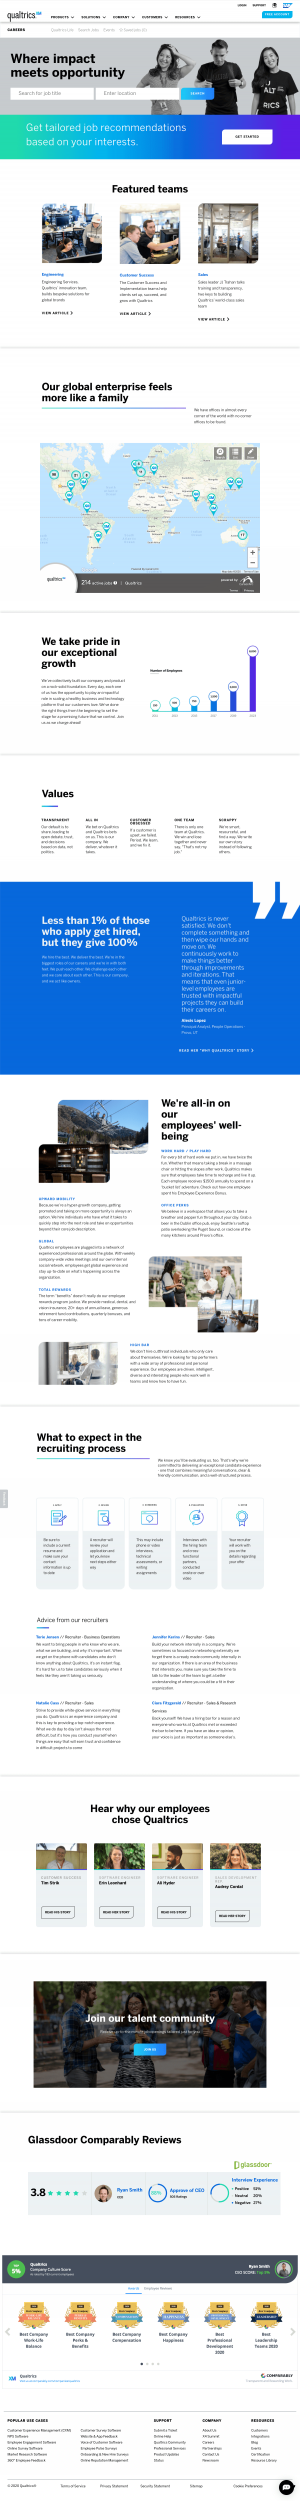 Qualtrics – Career page